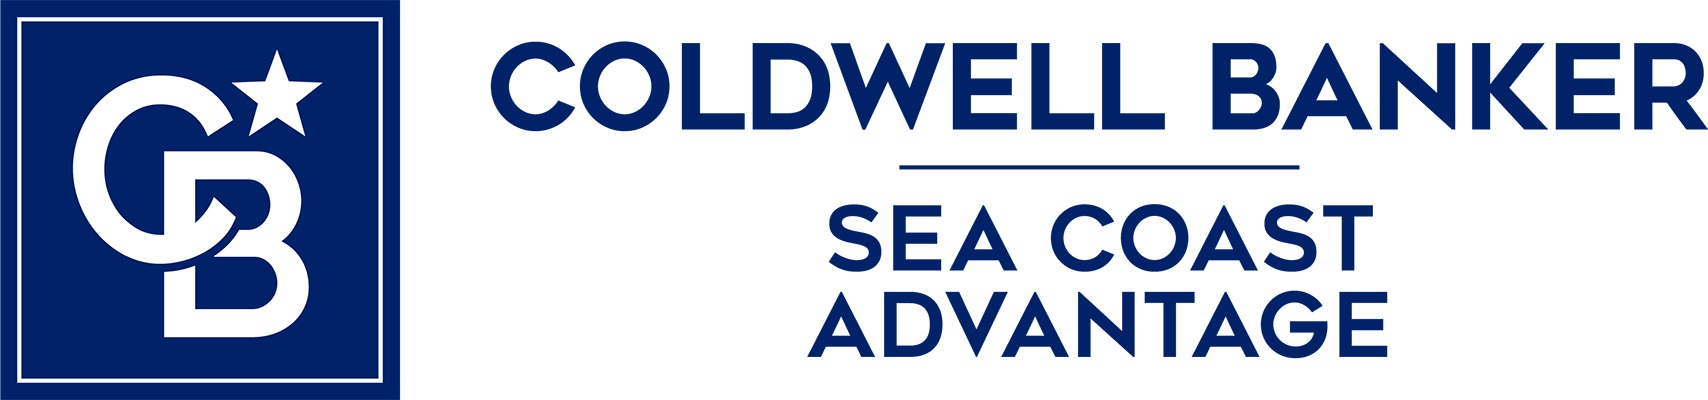 Peter David - Coldwell Banker Sea Coast Advantage Realty Logo